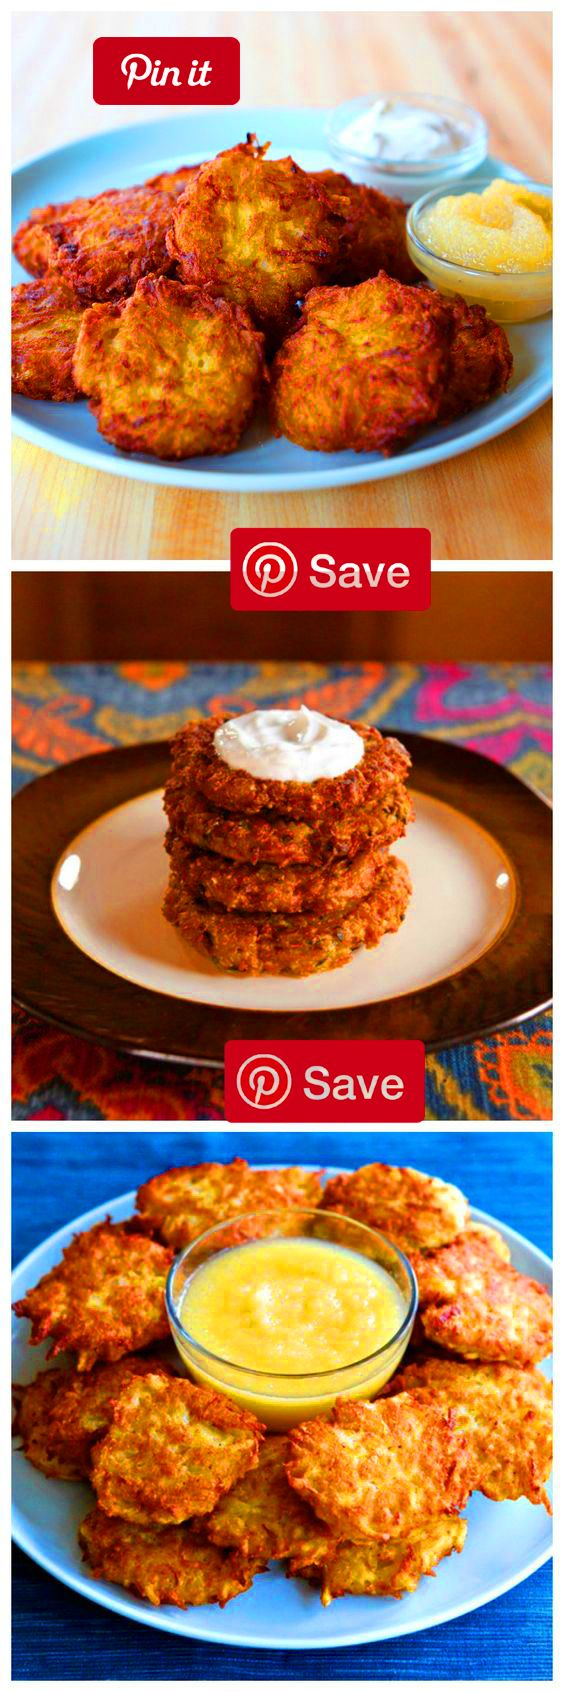 How to Make Crispy Perfect Latkes For Hanukkah Learn tips and tricks for making perfect latkes every time that are crispy outside fluffy inside. Includes links to several tested latke easys